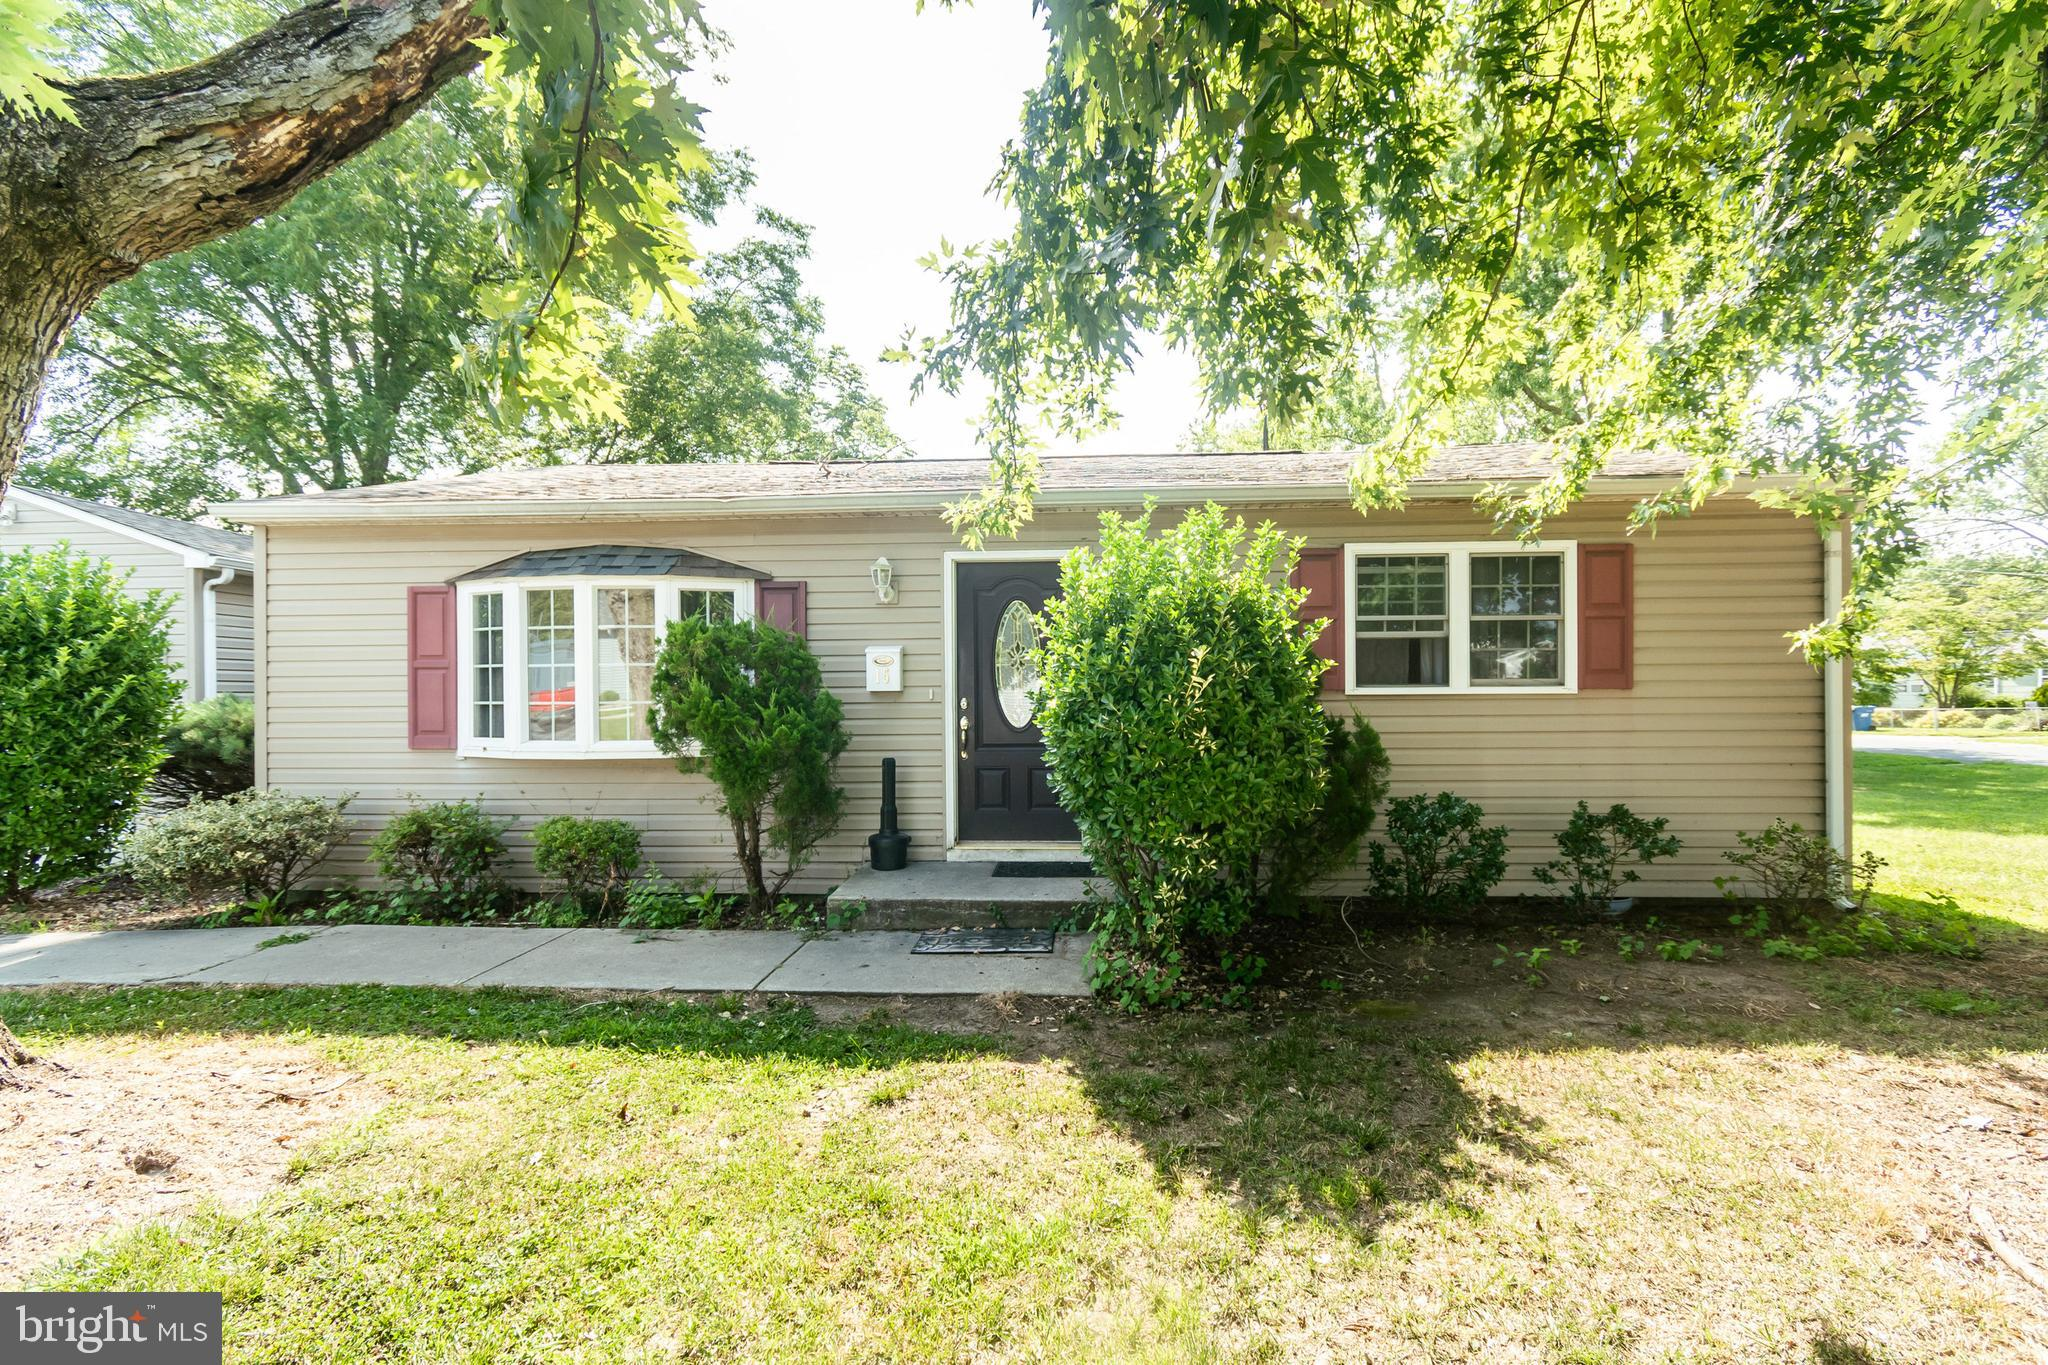 Come check out this great 3 bed 1.5 bath ranch home in Camden! Recently remodeled, the home offers hardwood floors, neutral walls, stainless steel appliances, new cabinets, attached one car garage, large yard, shade trees, and more in Caesar Rodney school district. Make your appt today! tenant in place, minimum 48 hours notice for showings.